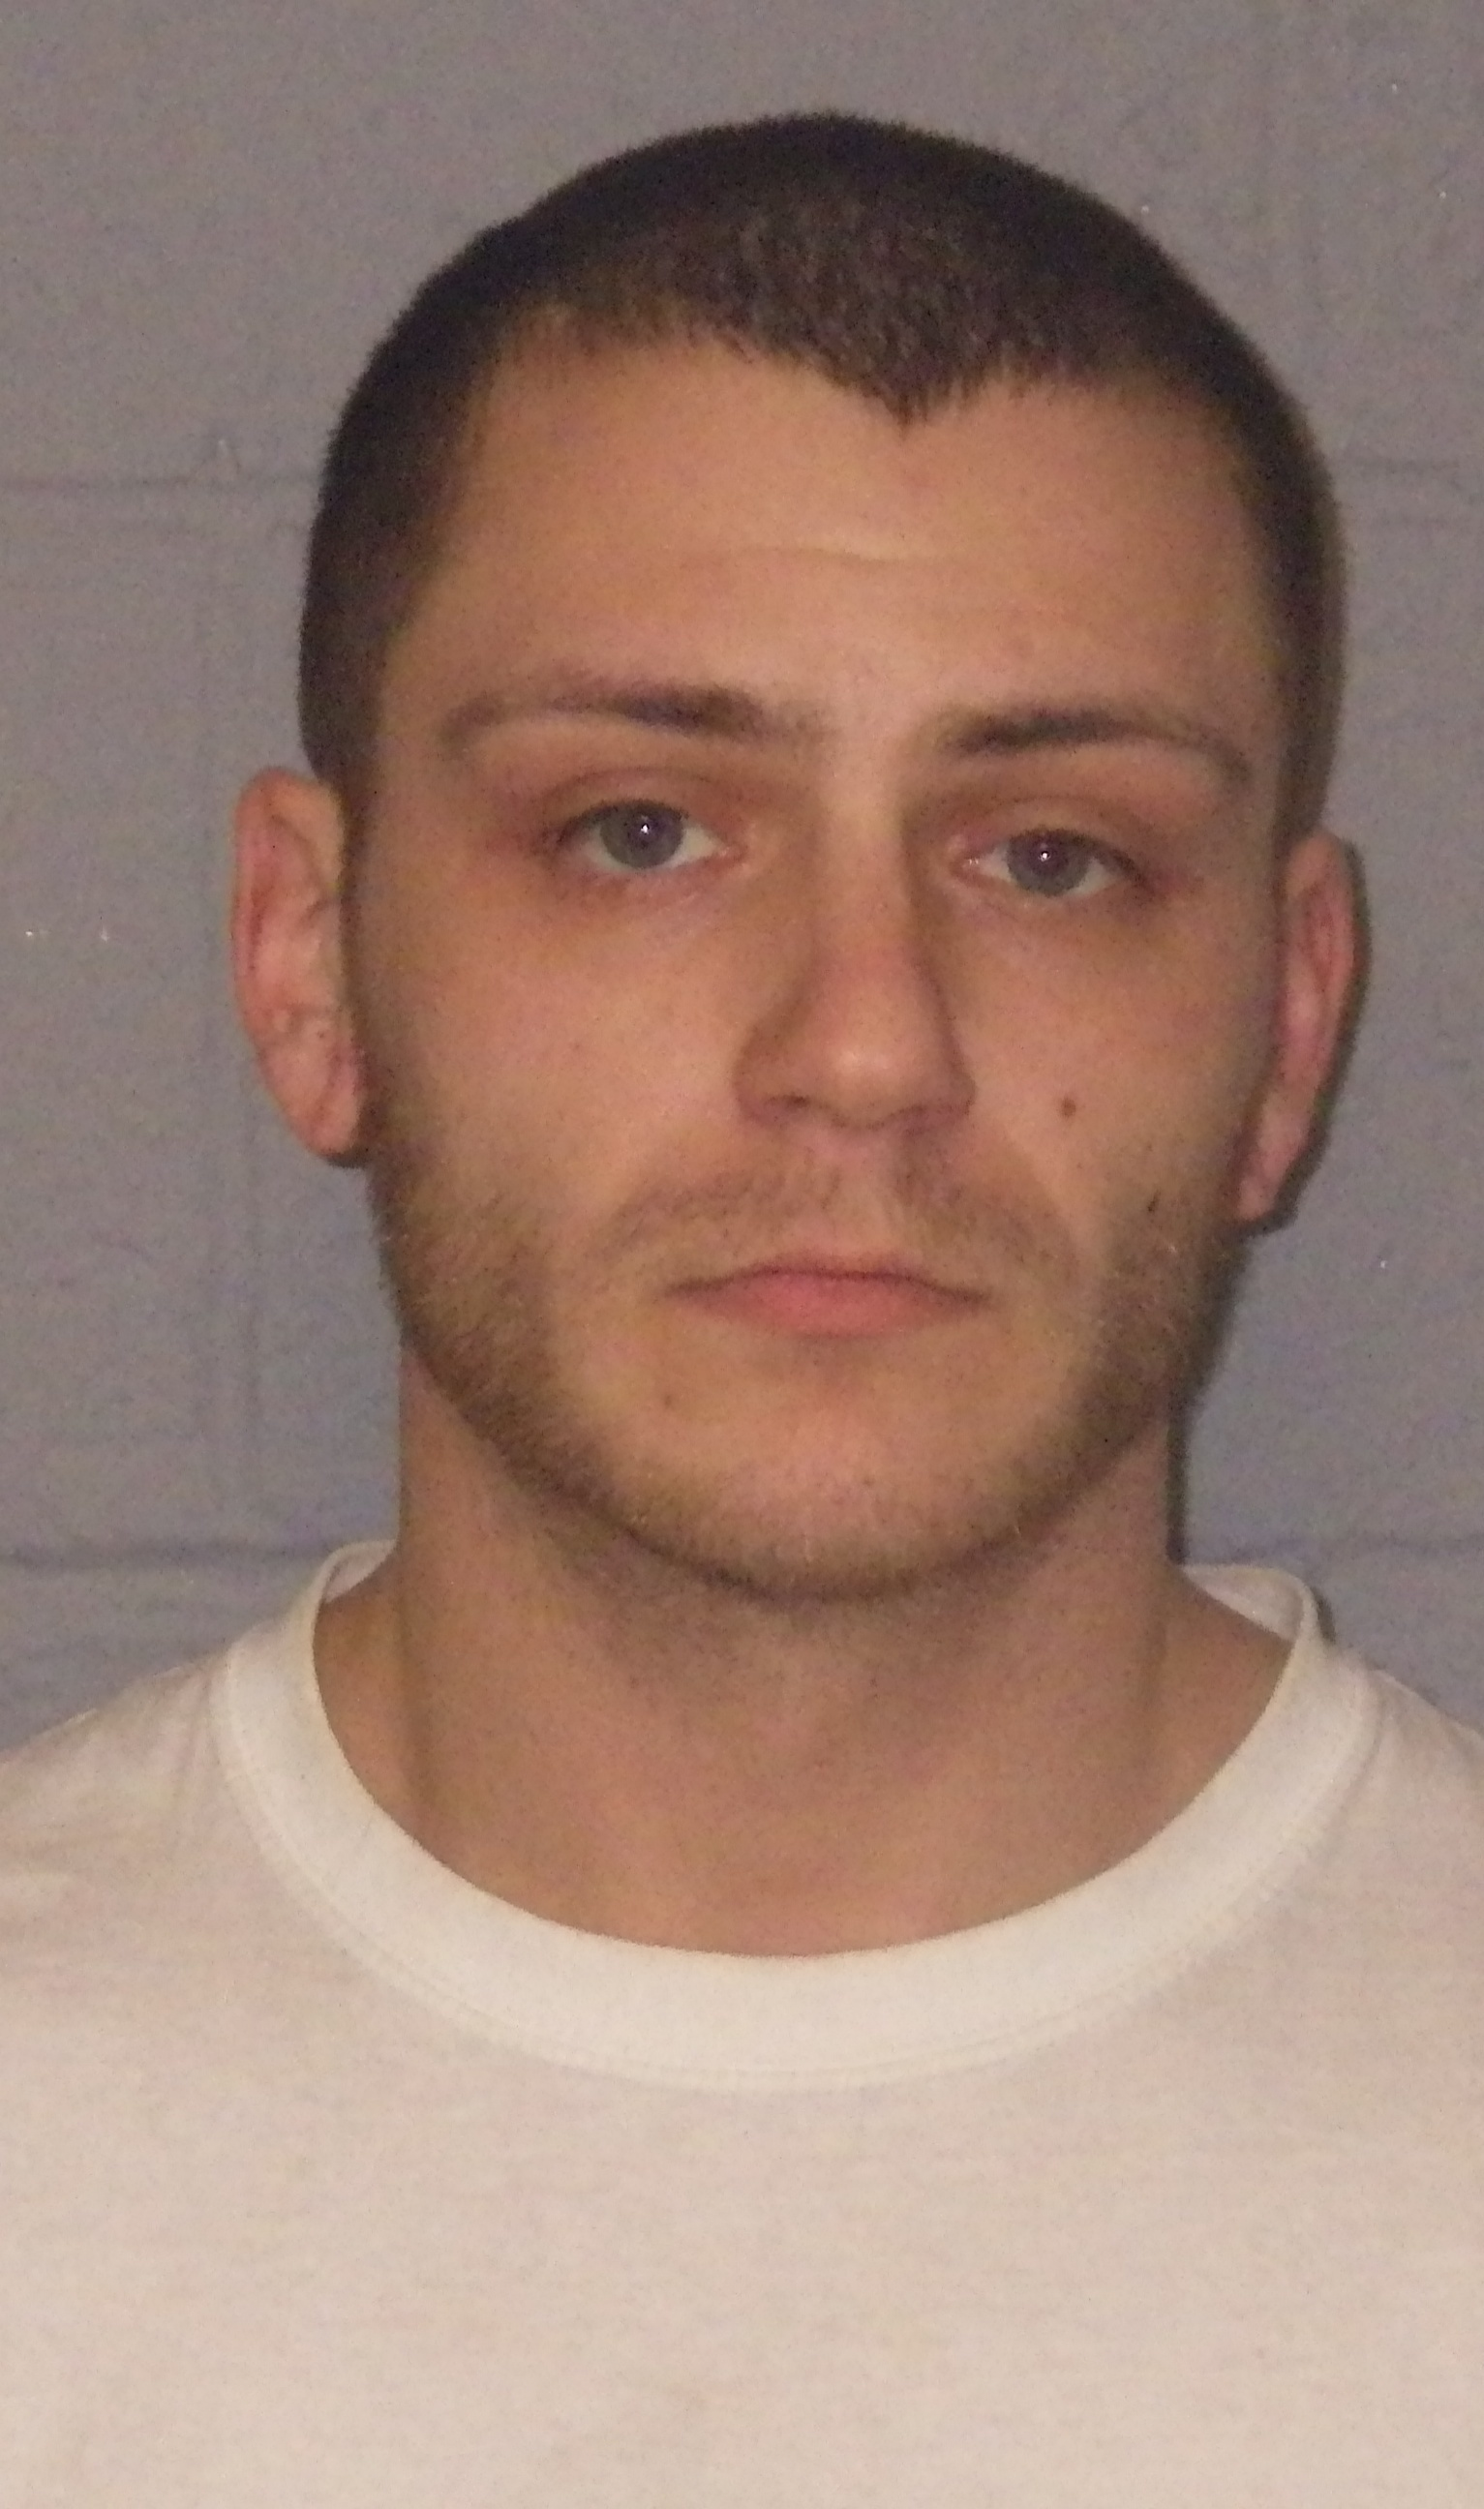 hopatcong men 50 mailboxes smashed by drunk men in hopatcong - hopatcong-sparta, nj - the men were charged with criminal mischief for damaging mailboxes during their drunk walk home, police said.